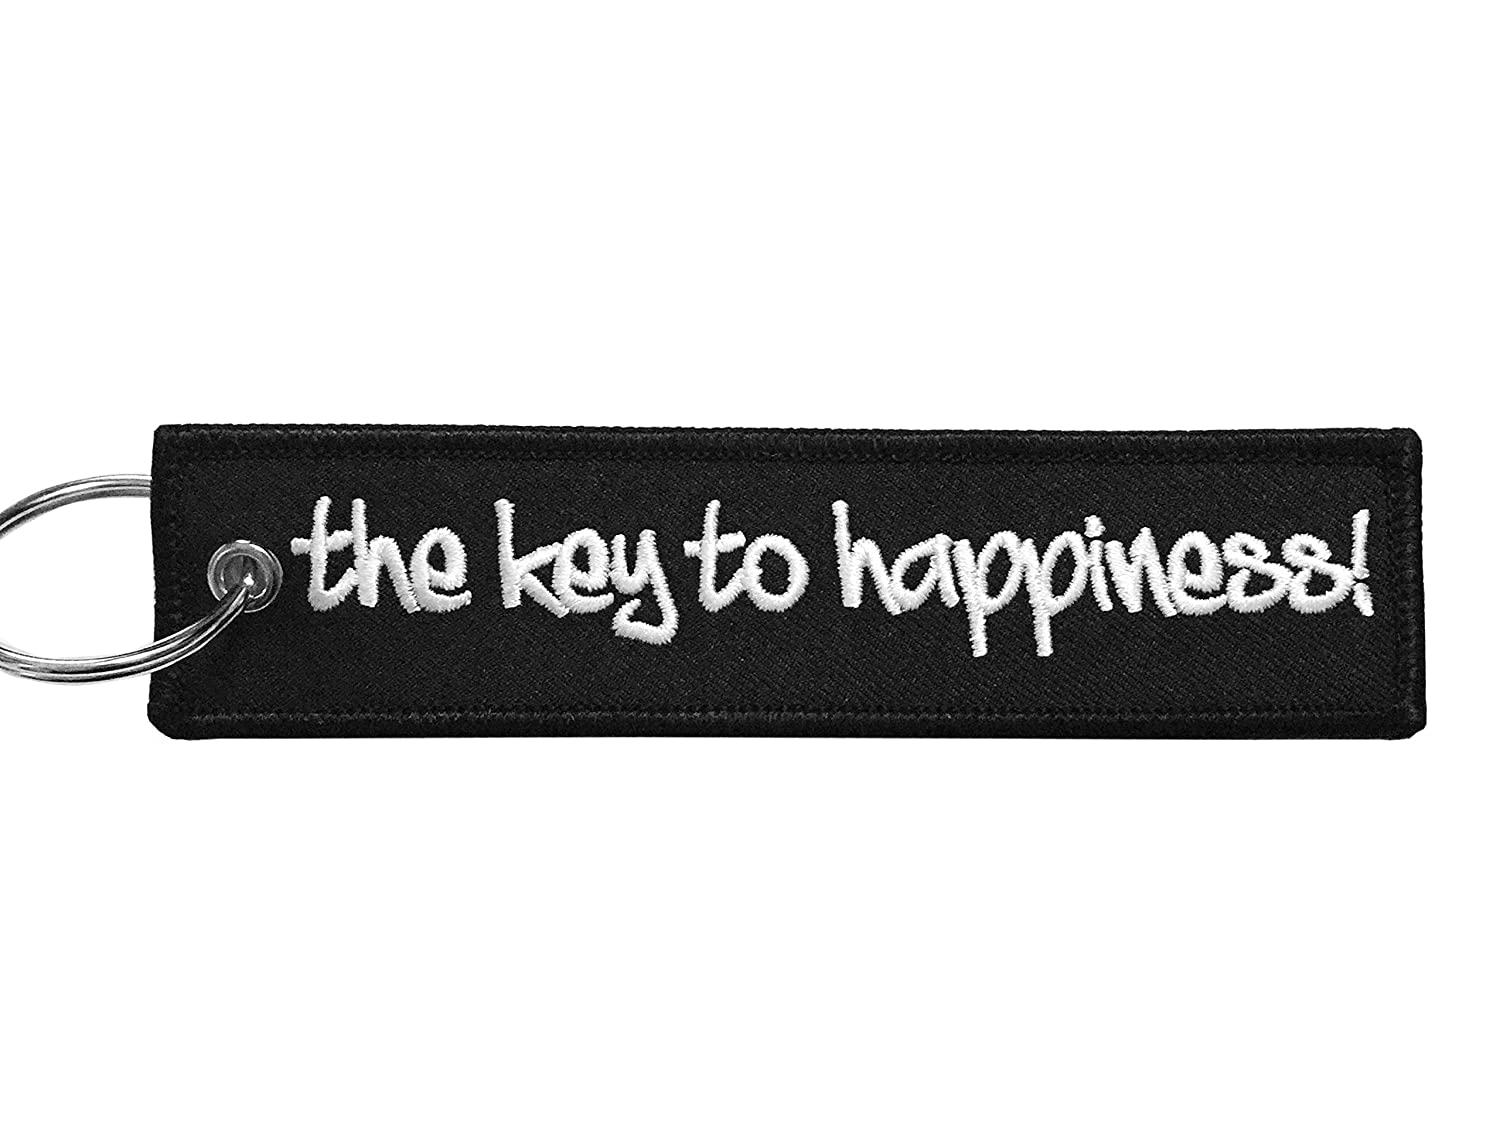 Moto Loot Keychain for Motorcycles, Scooters, Cars and Gifts (The Key to  Happiness)